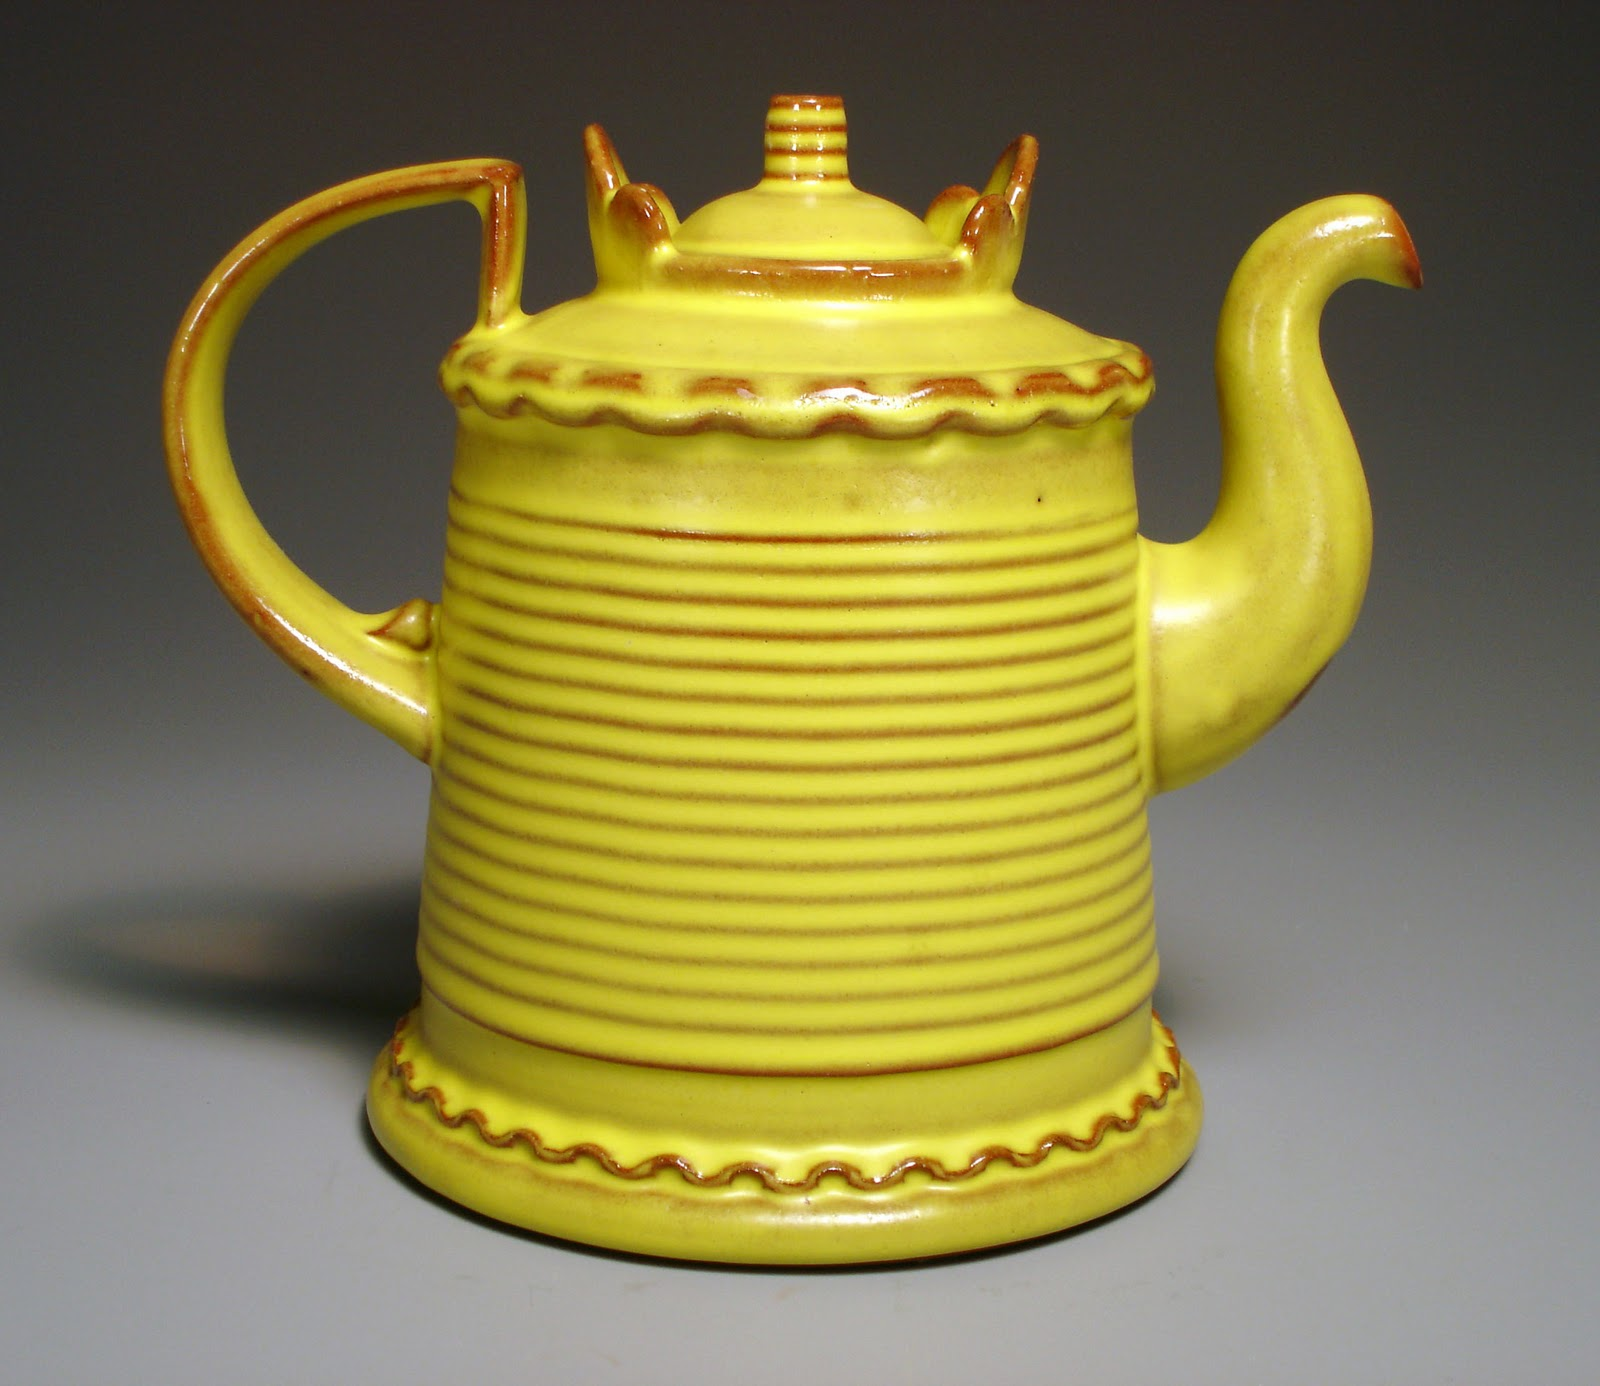 FREE IS MY LIFE: FREE Pewabic Pottery Teapot Exhibit Opening ...